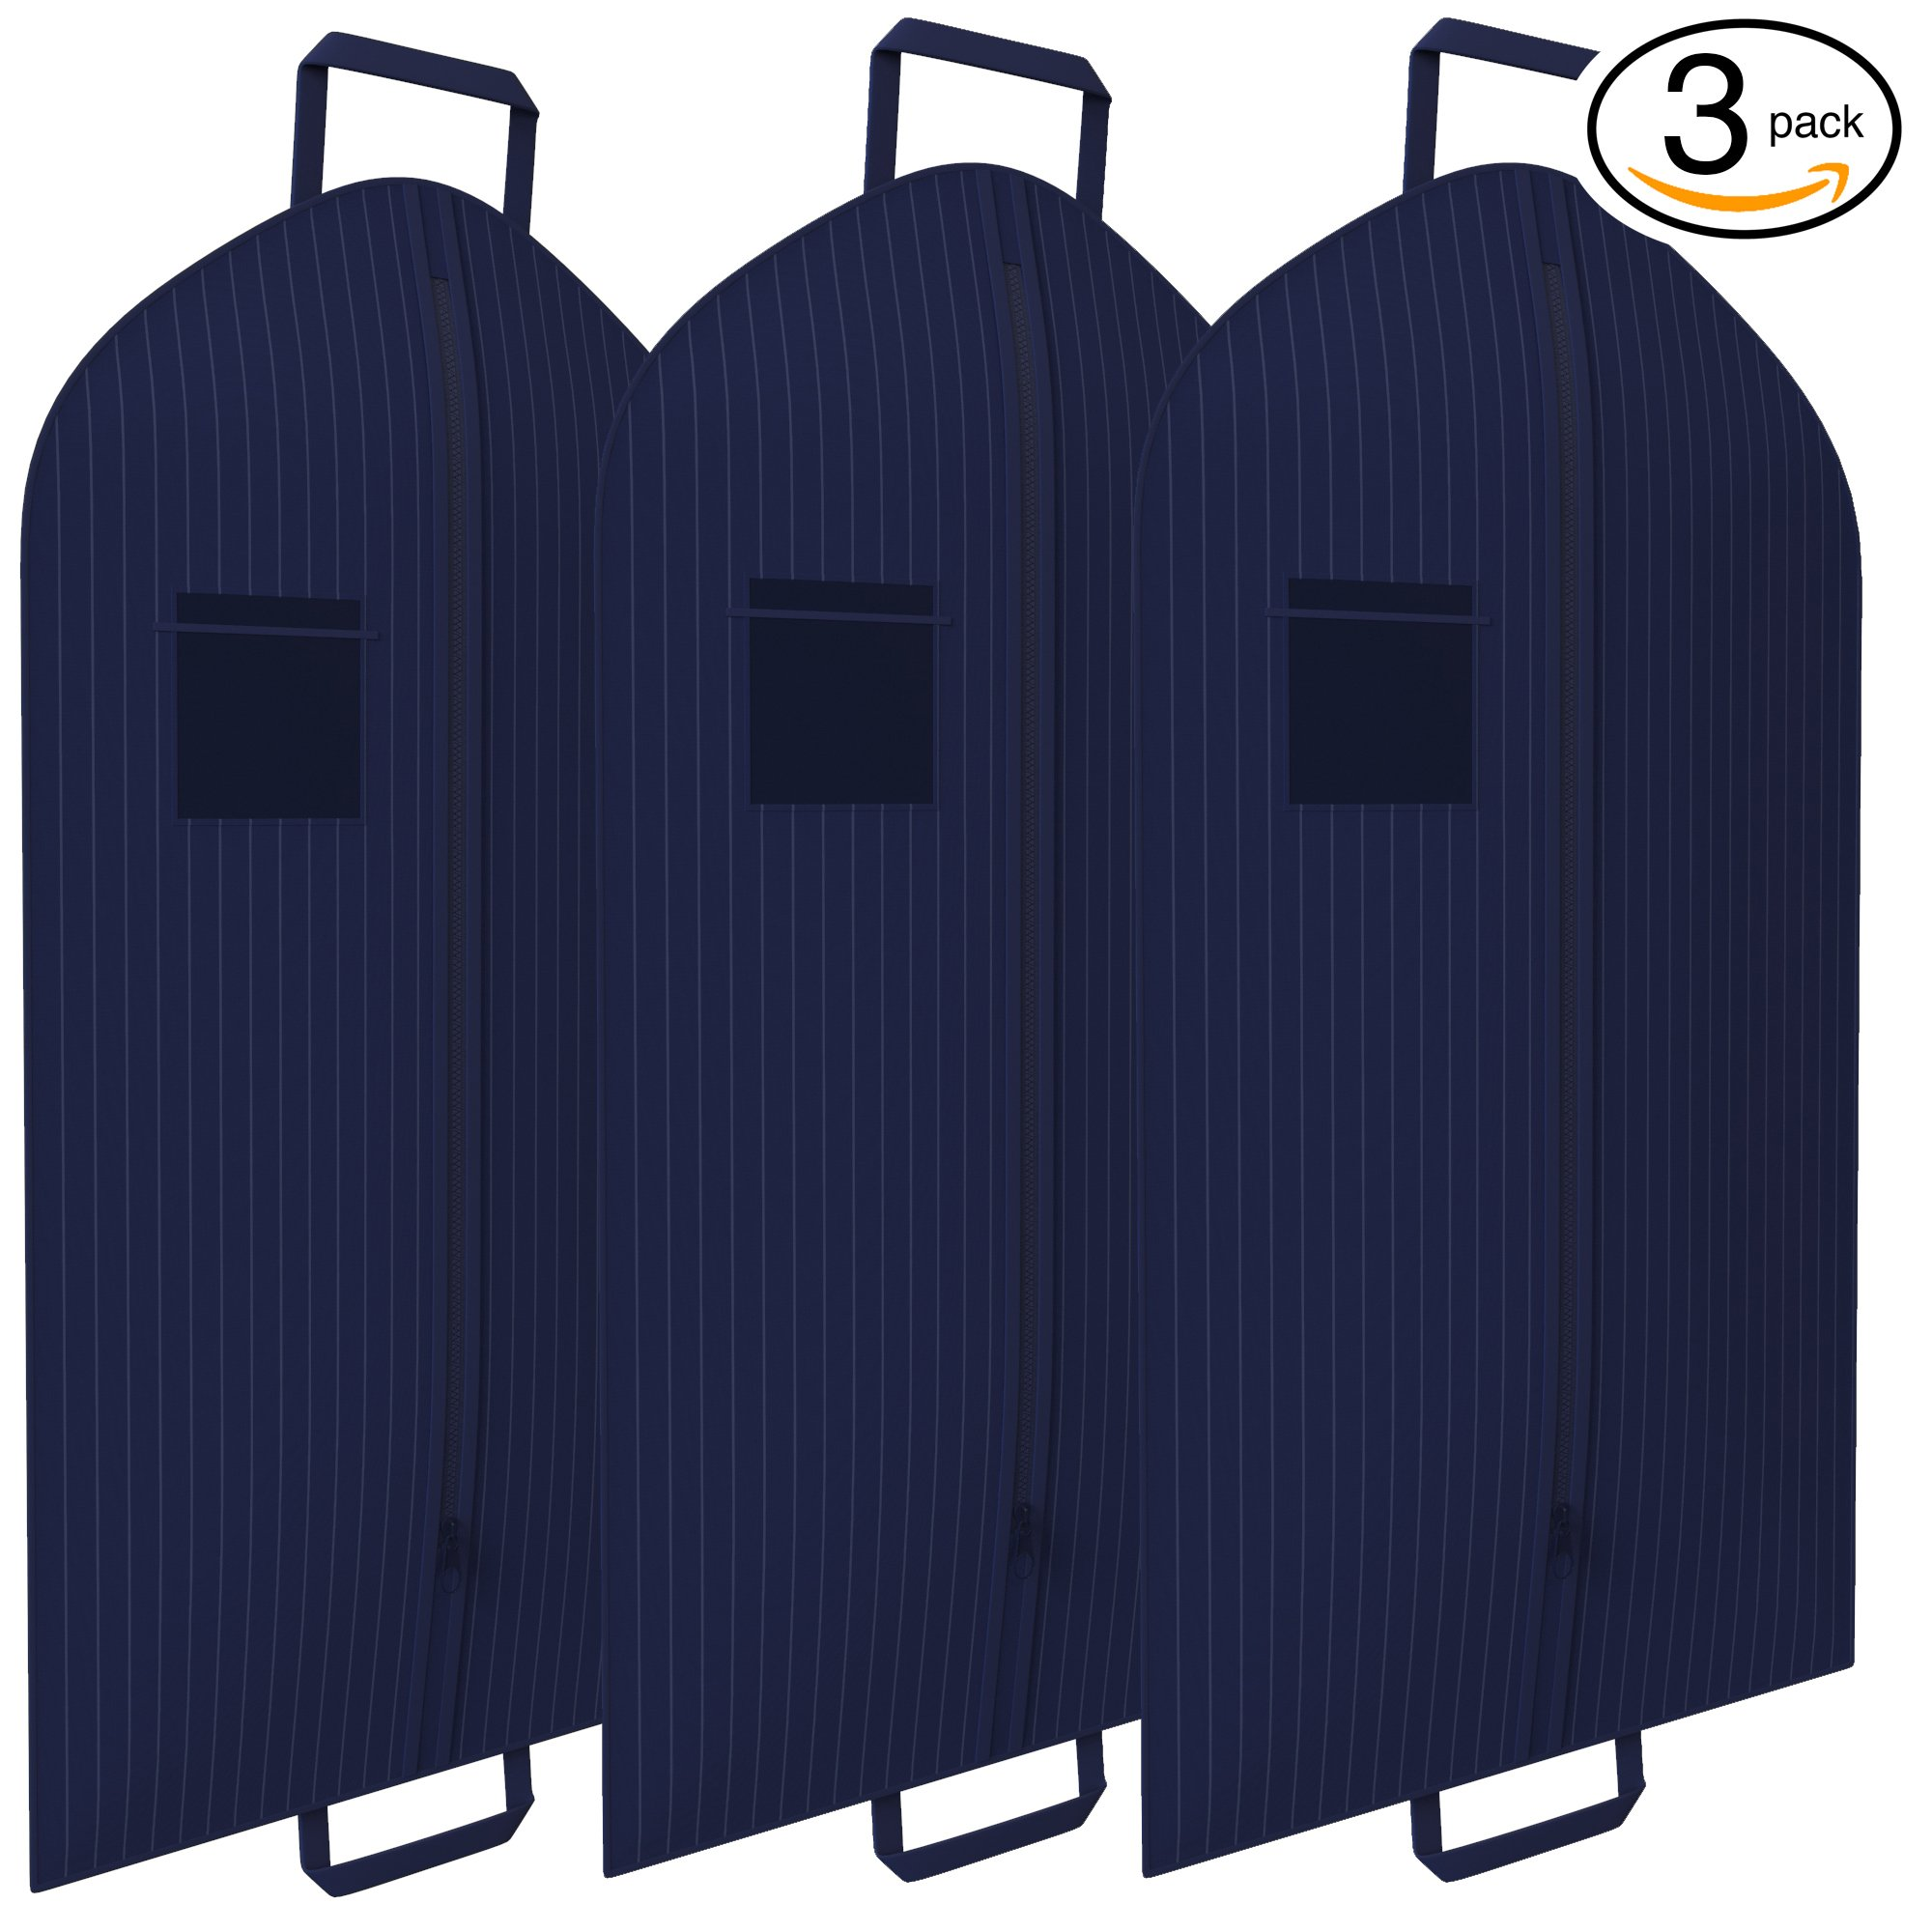 Navy Pinstriped Suit Garment Travel Bags 3 Pack With ID Tag Window - 40'' X 24''